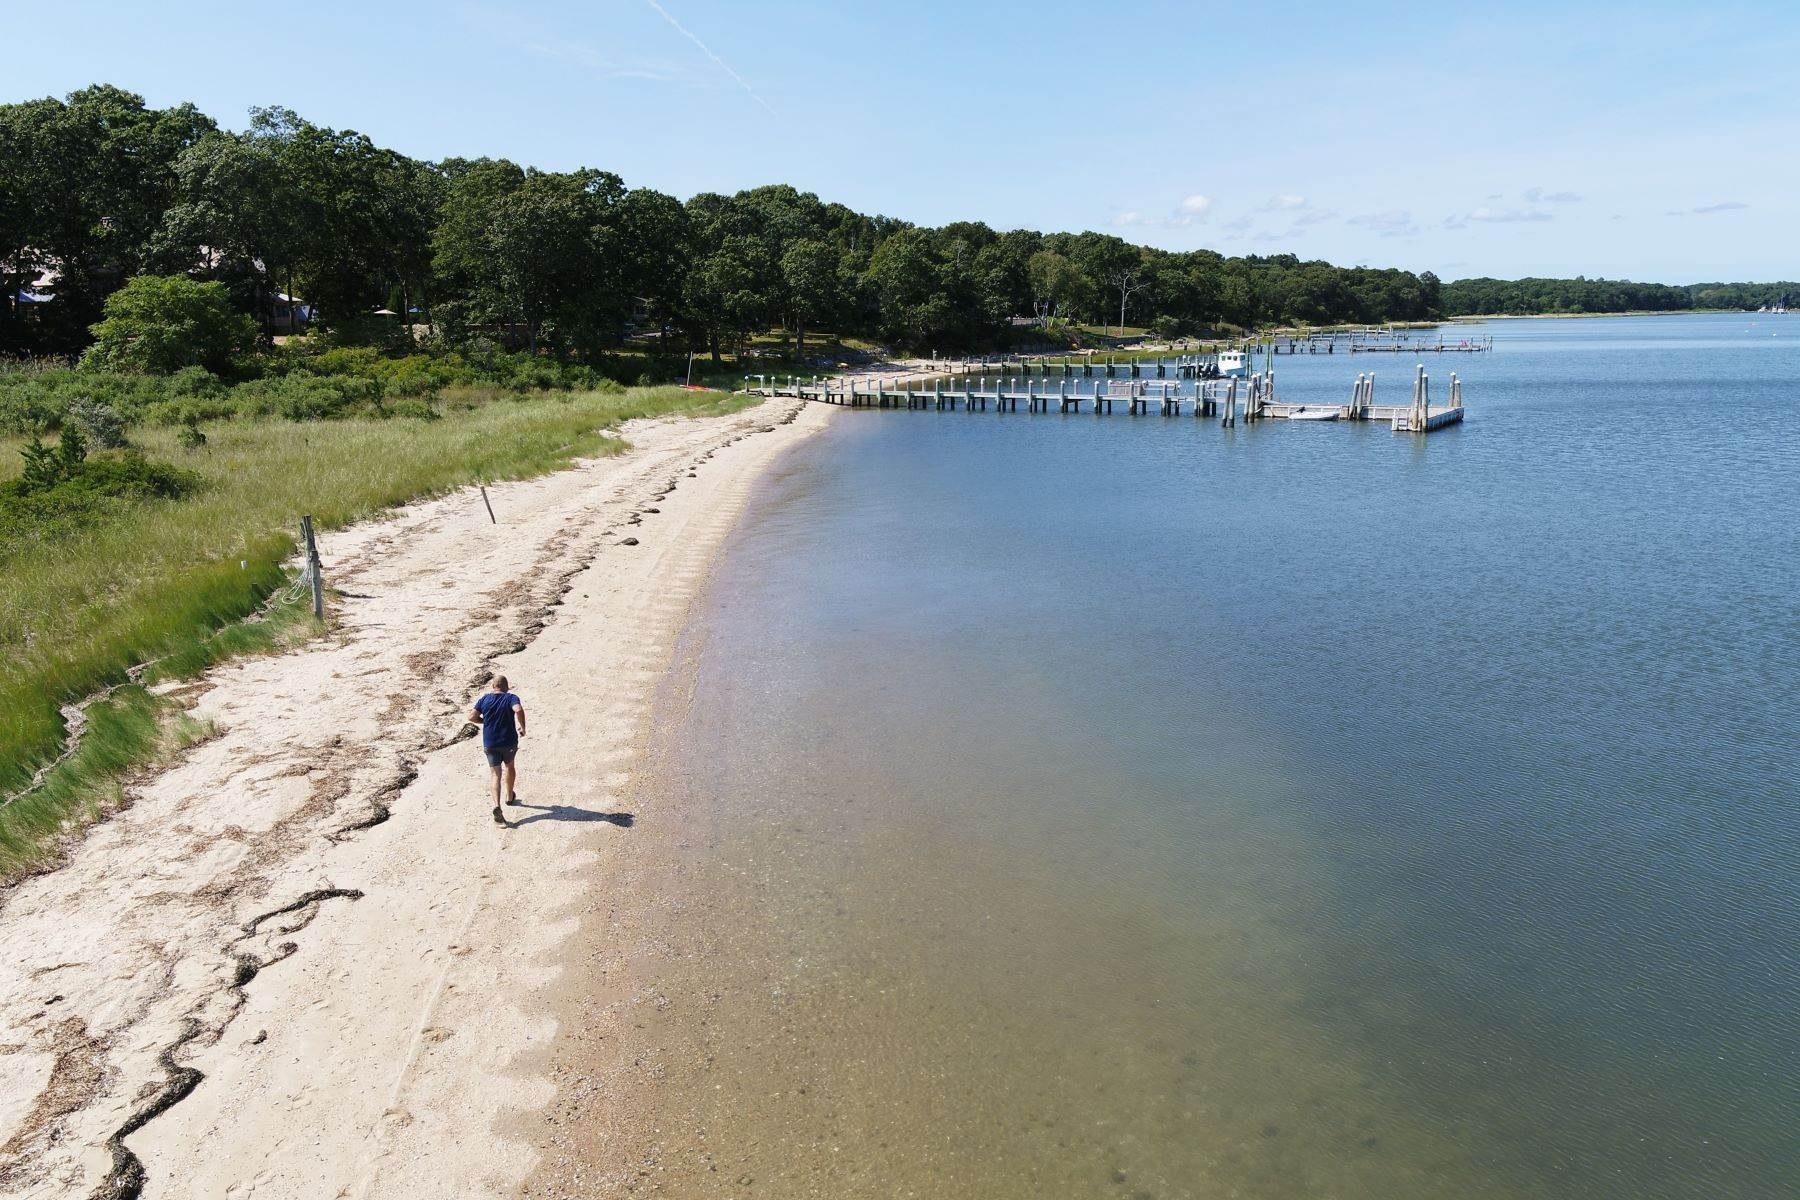 Single Family Homes for Sale at 47b S Ferry Rd, Shelter Island, Ny, 11964 47B S Ferry Rd Shelter Island, New York 11964 United States